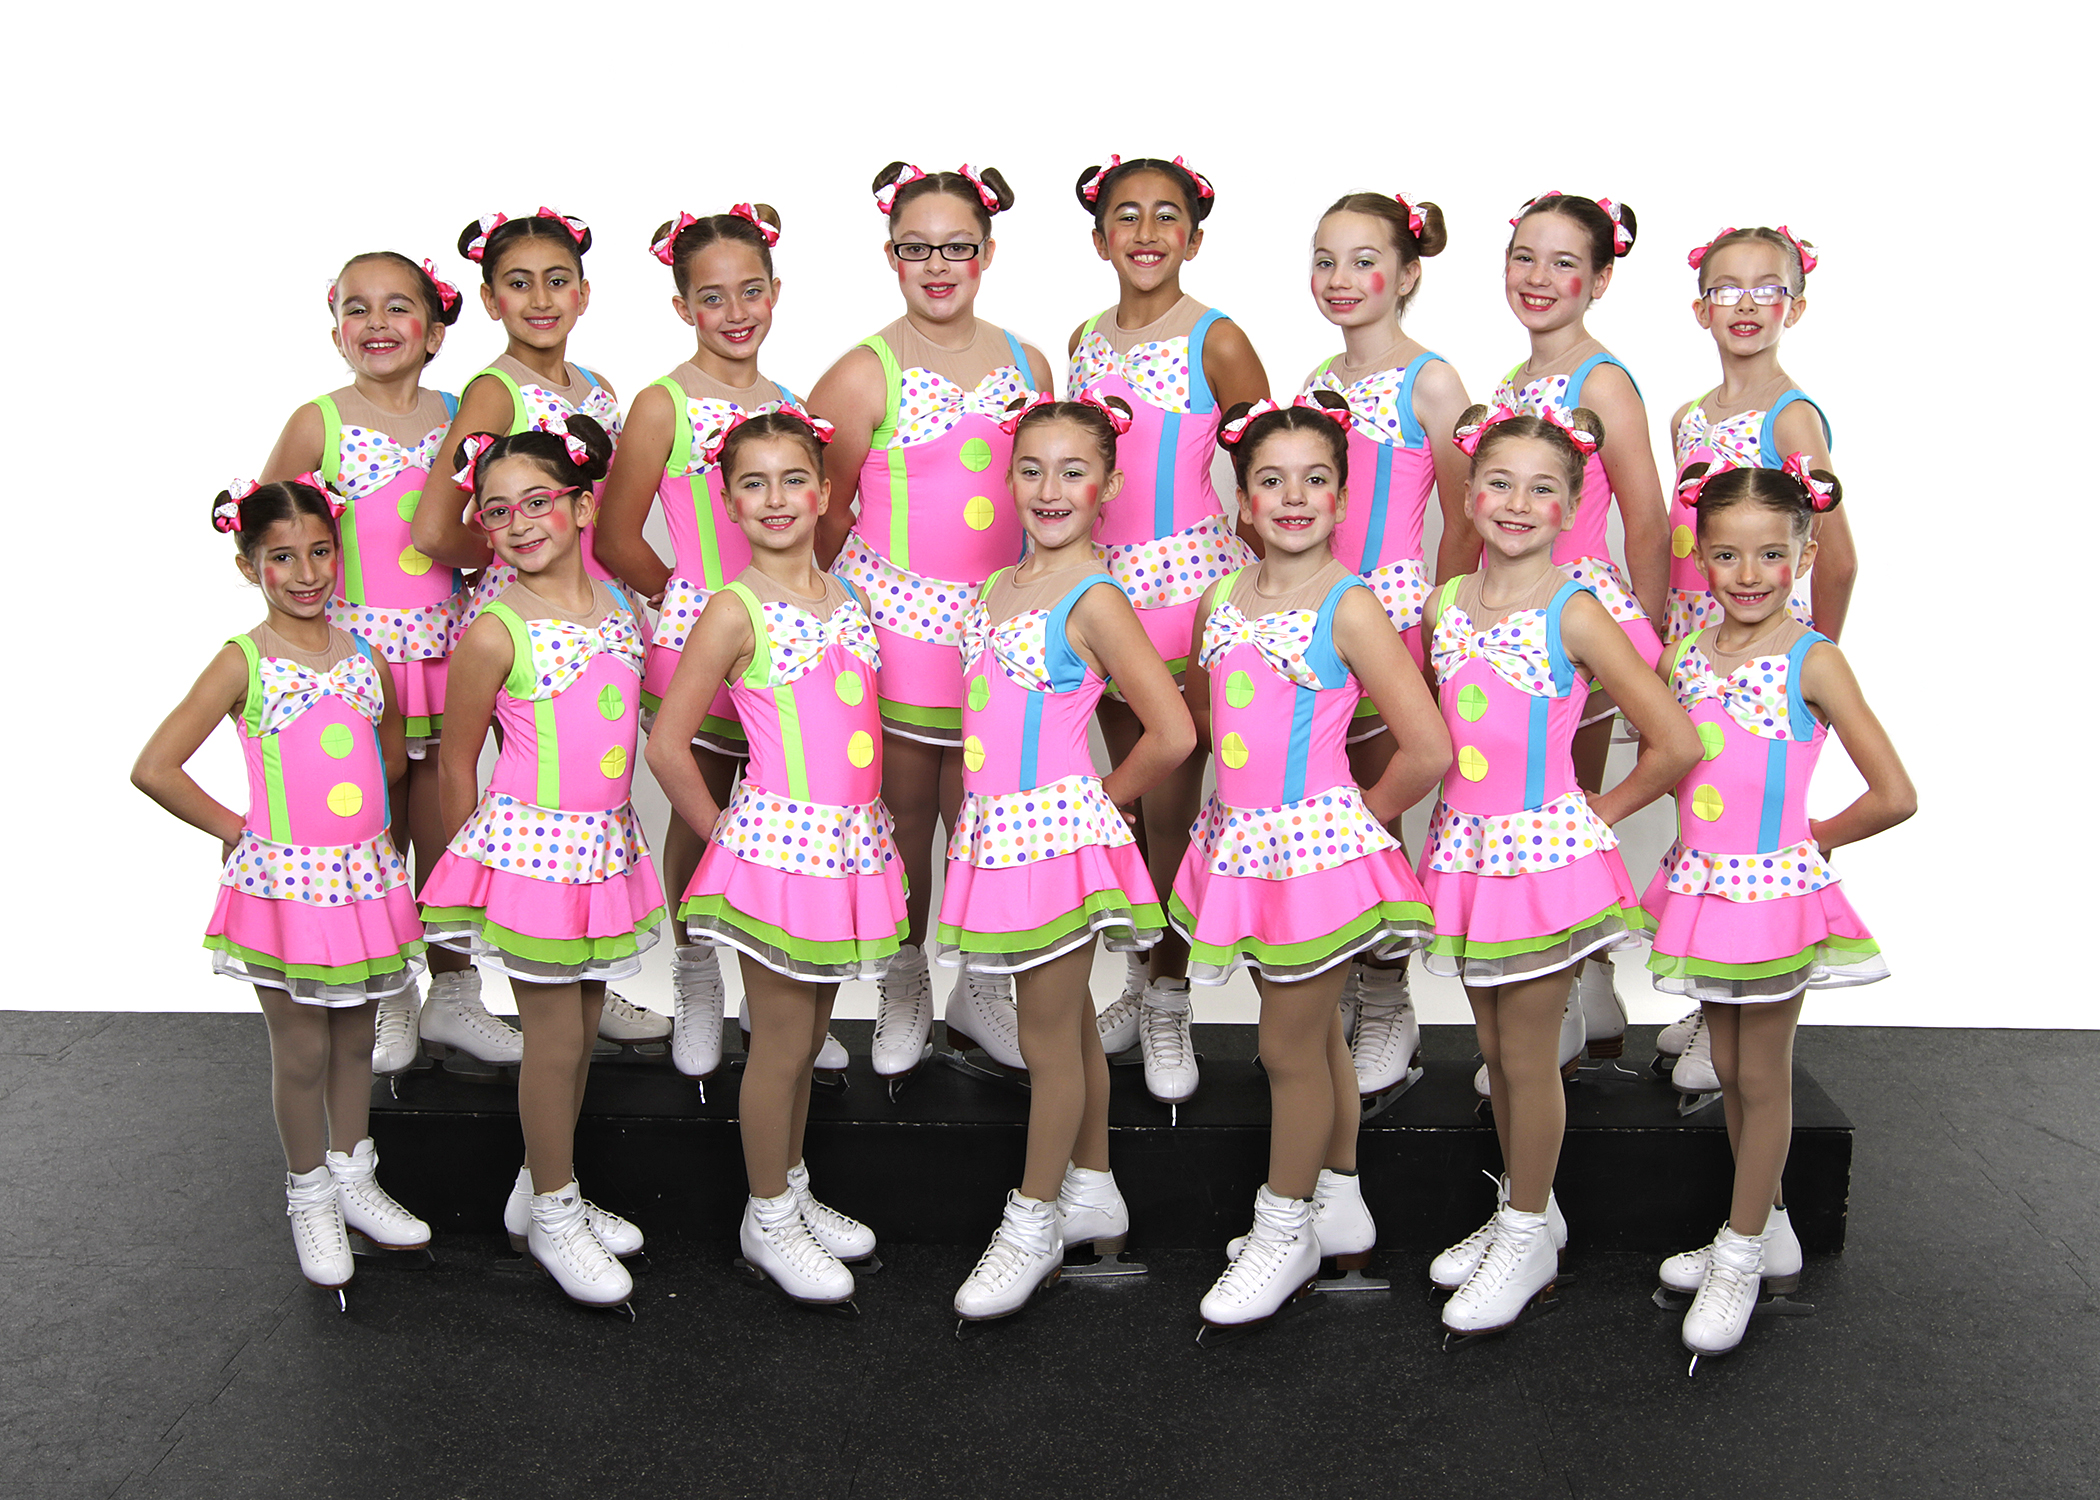 Crystallettes Preliminary 053 0425